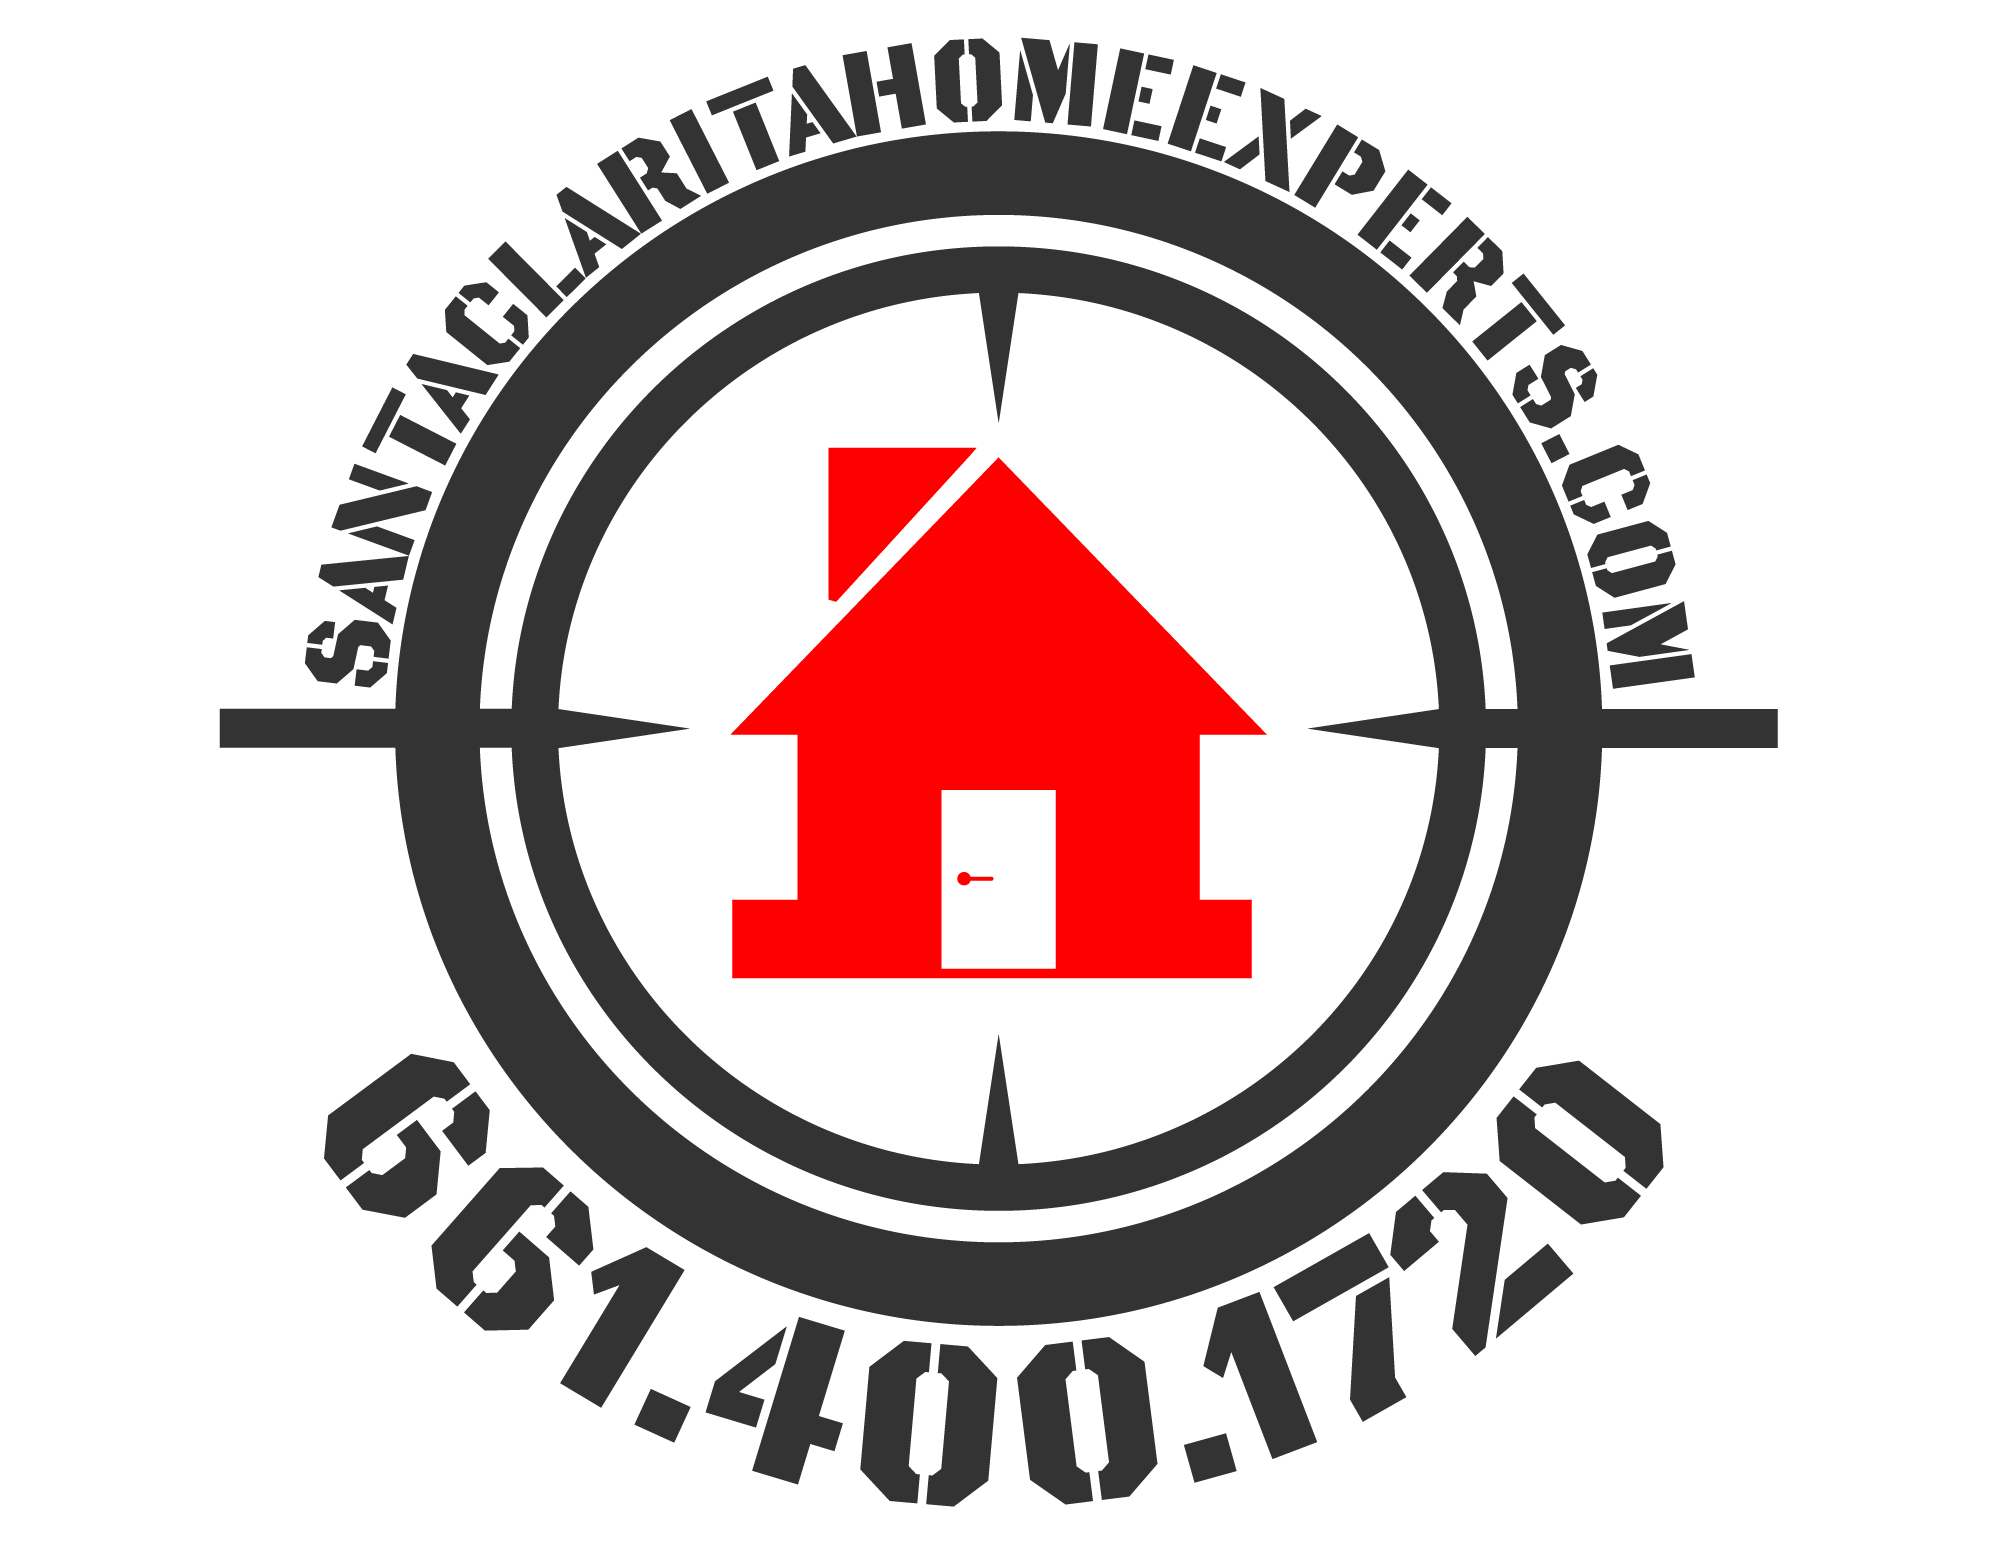 Santa Clarita home experts